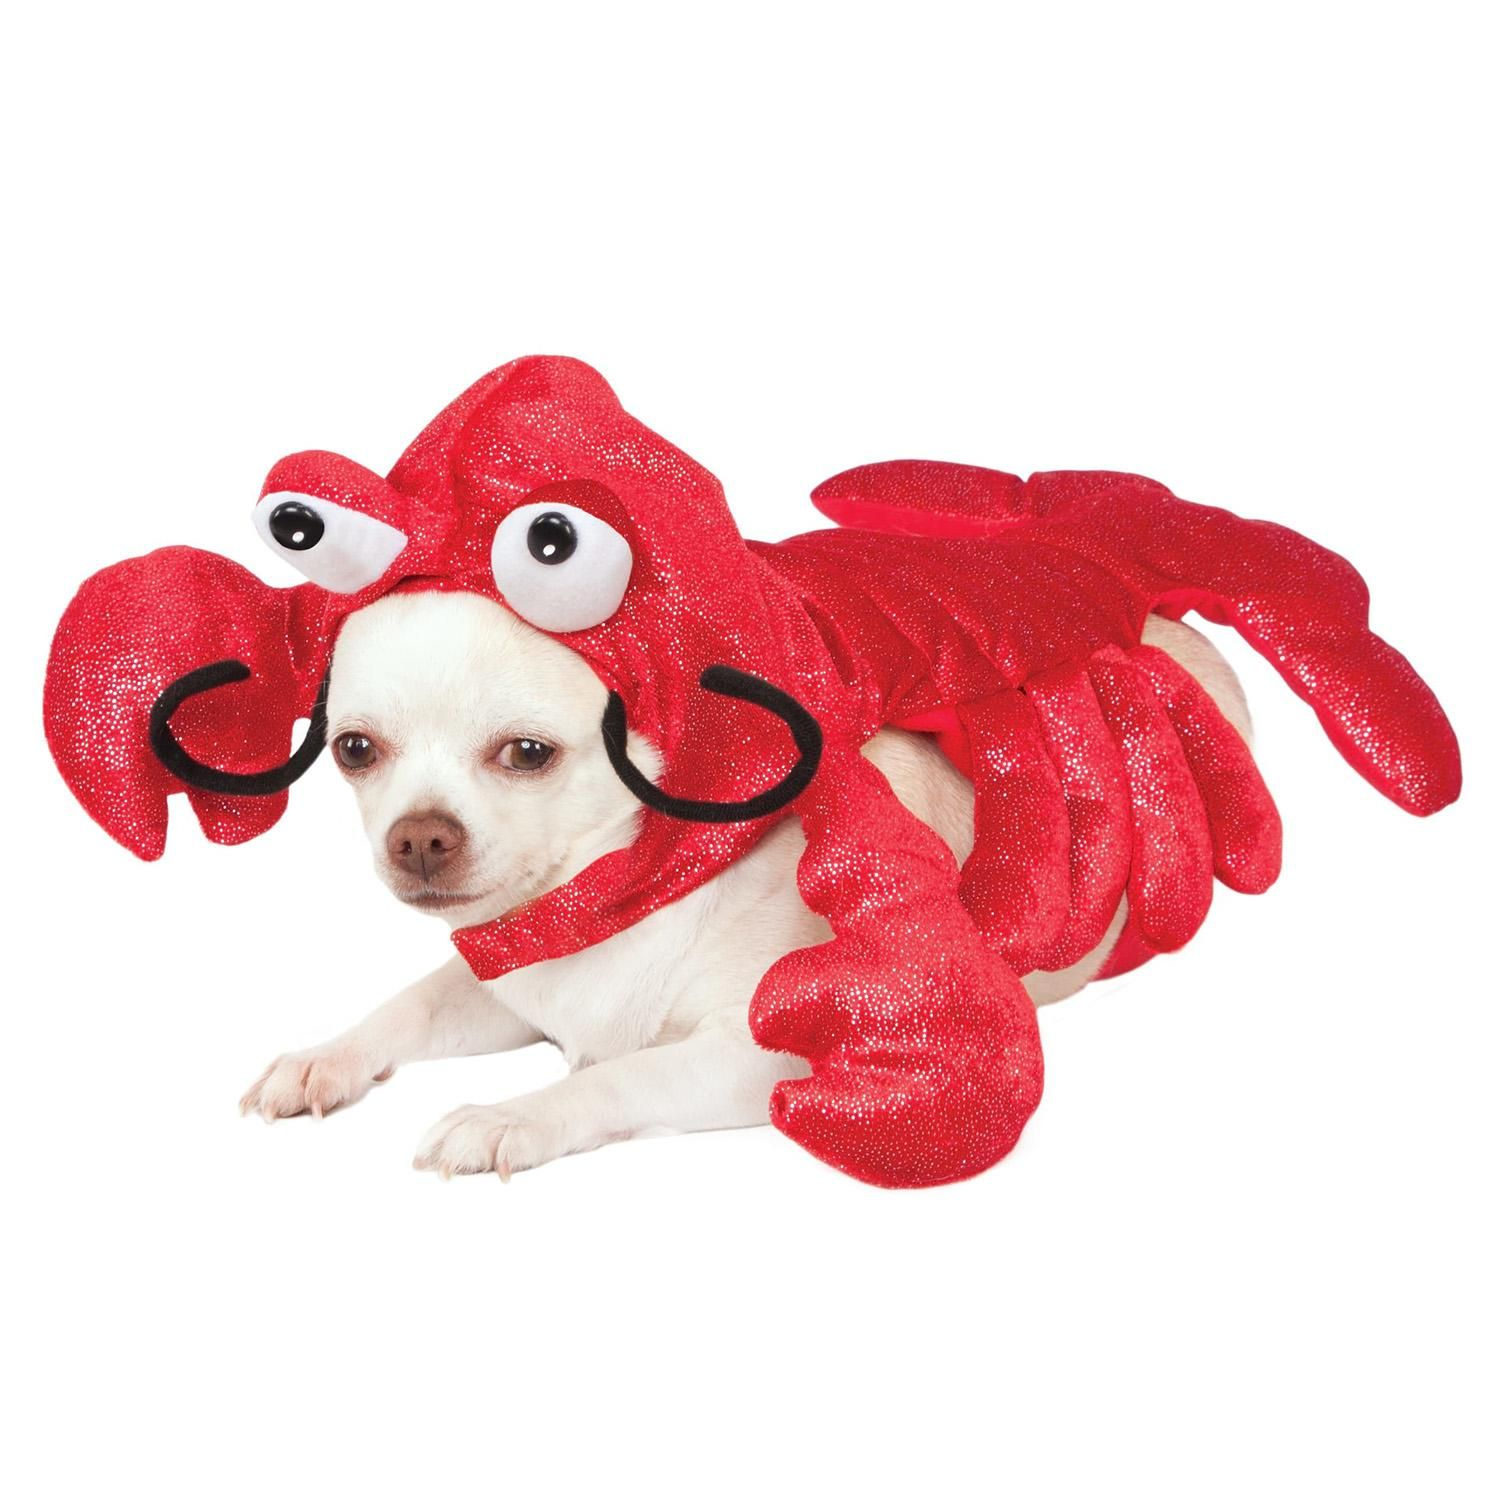 Rubies Mr Claws Lobster Dog Costume In 2020 Pet Costumes Dog Halloween Costumes Dog Costume